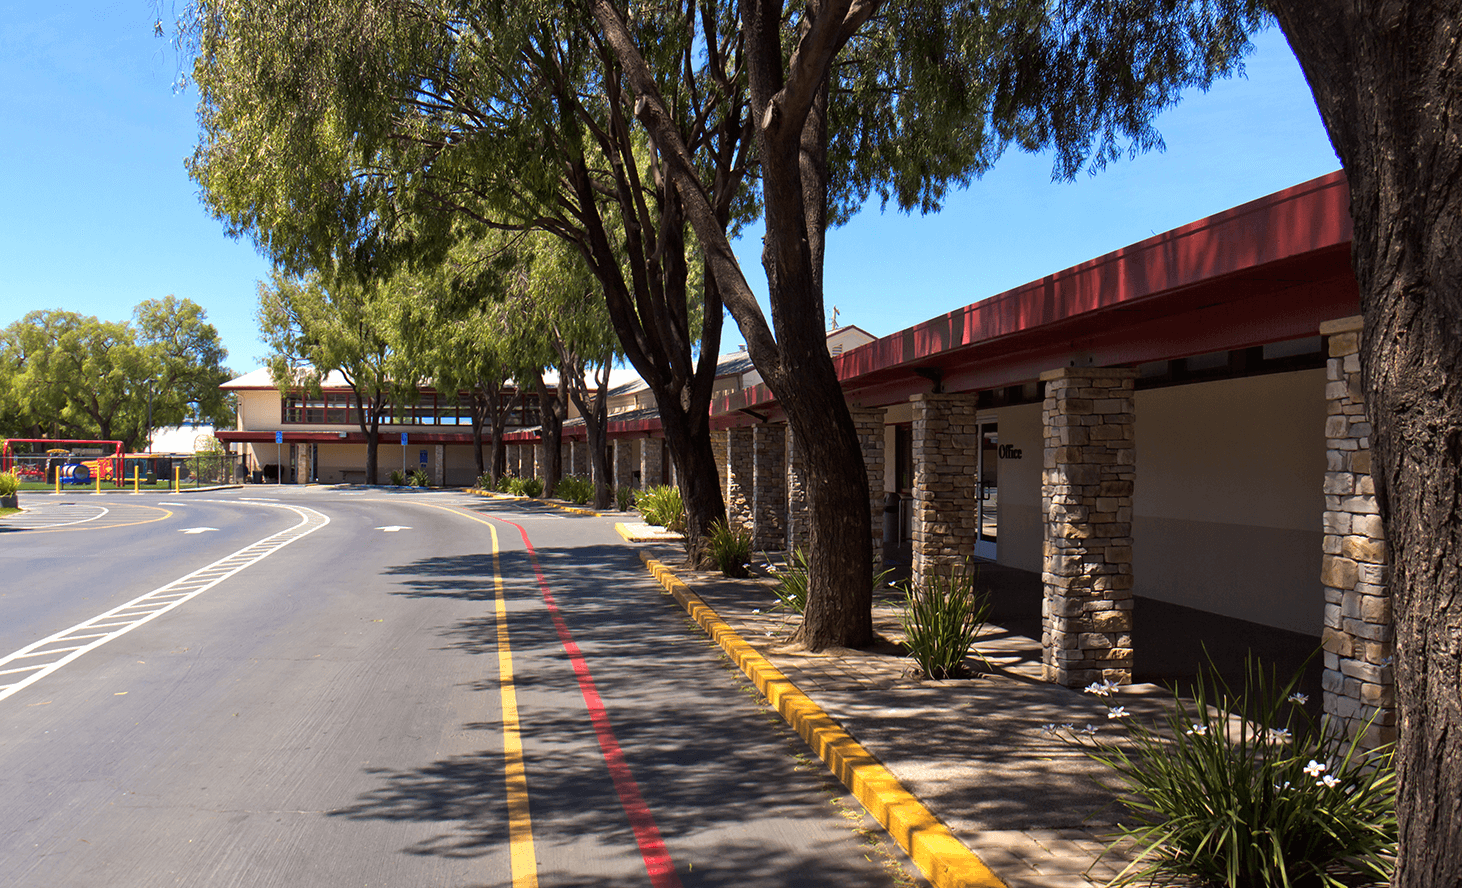 Exterior Parking Lot | Challenger School - Berryessa | Private School In San Jose, California